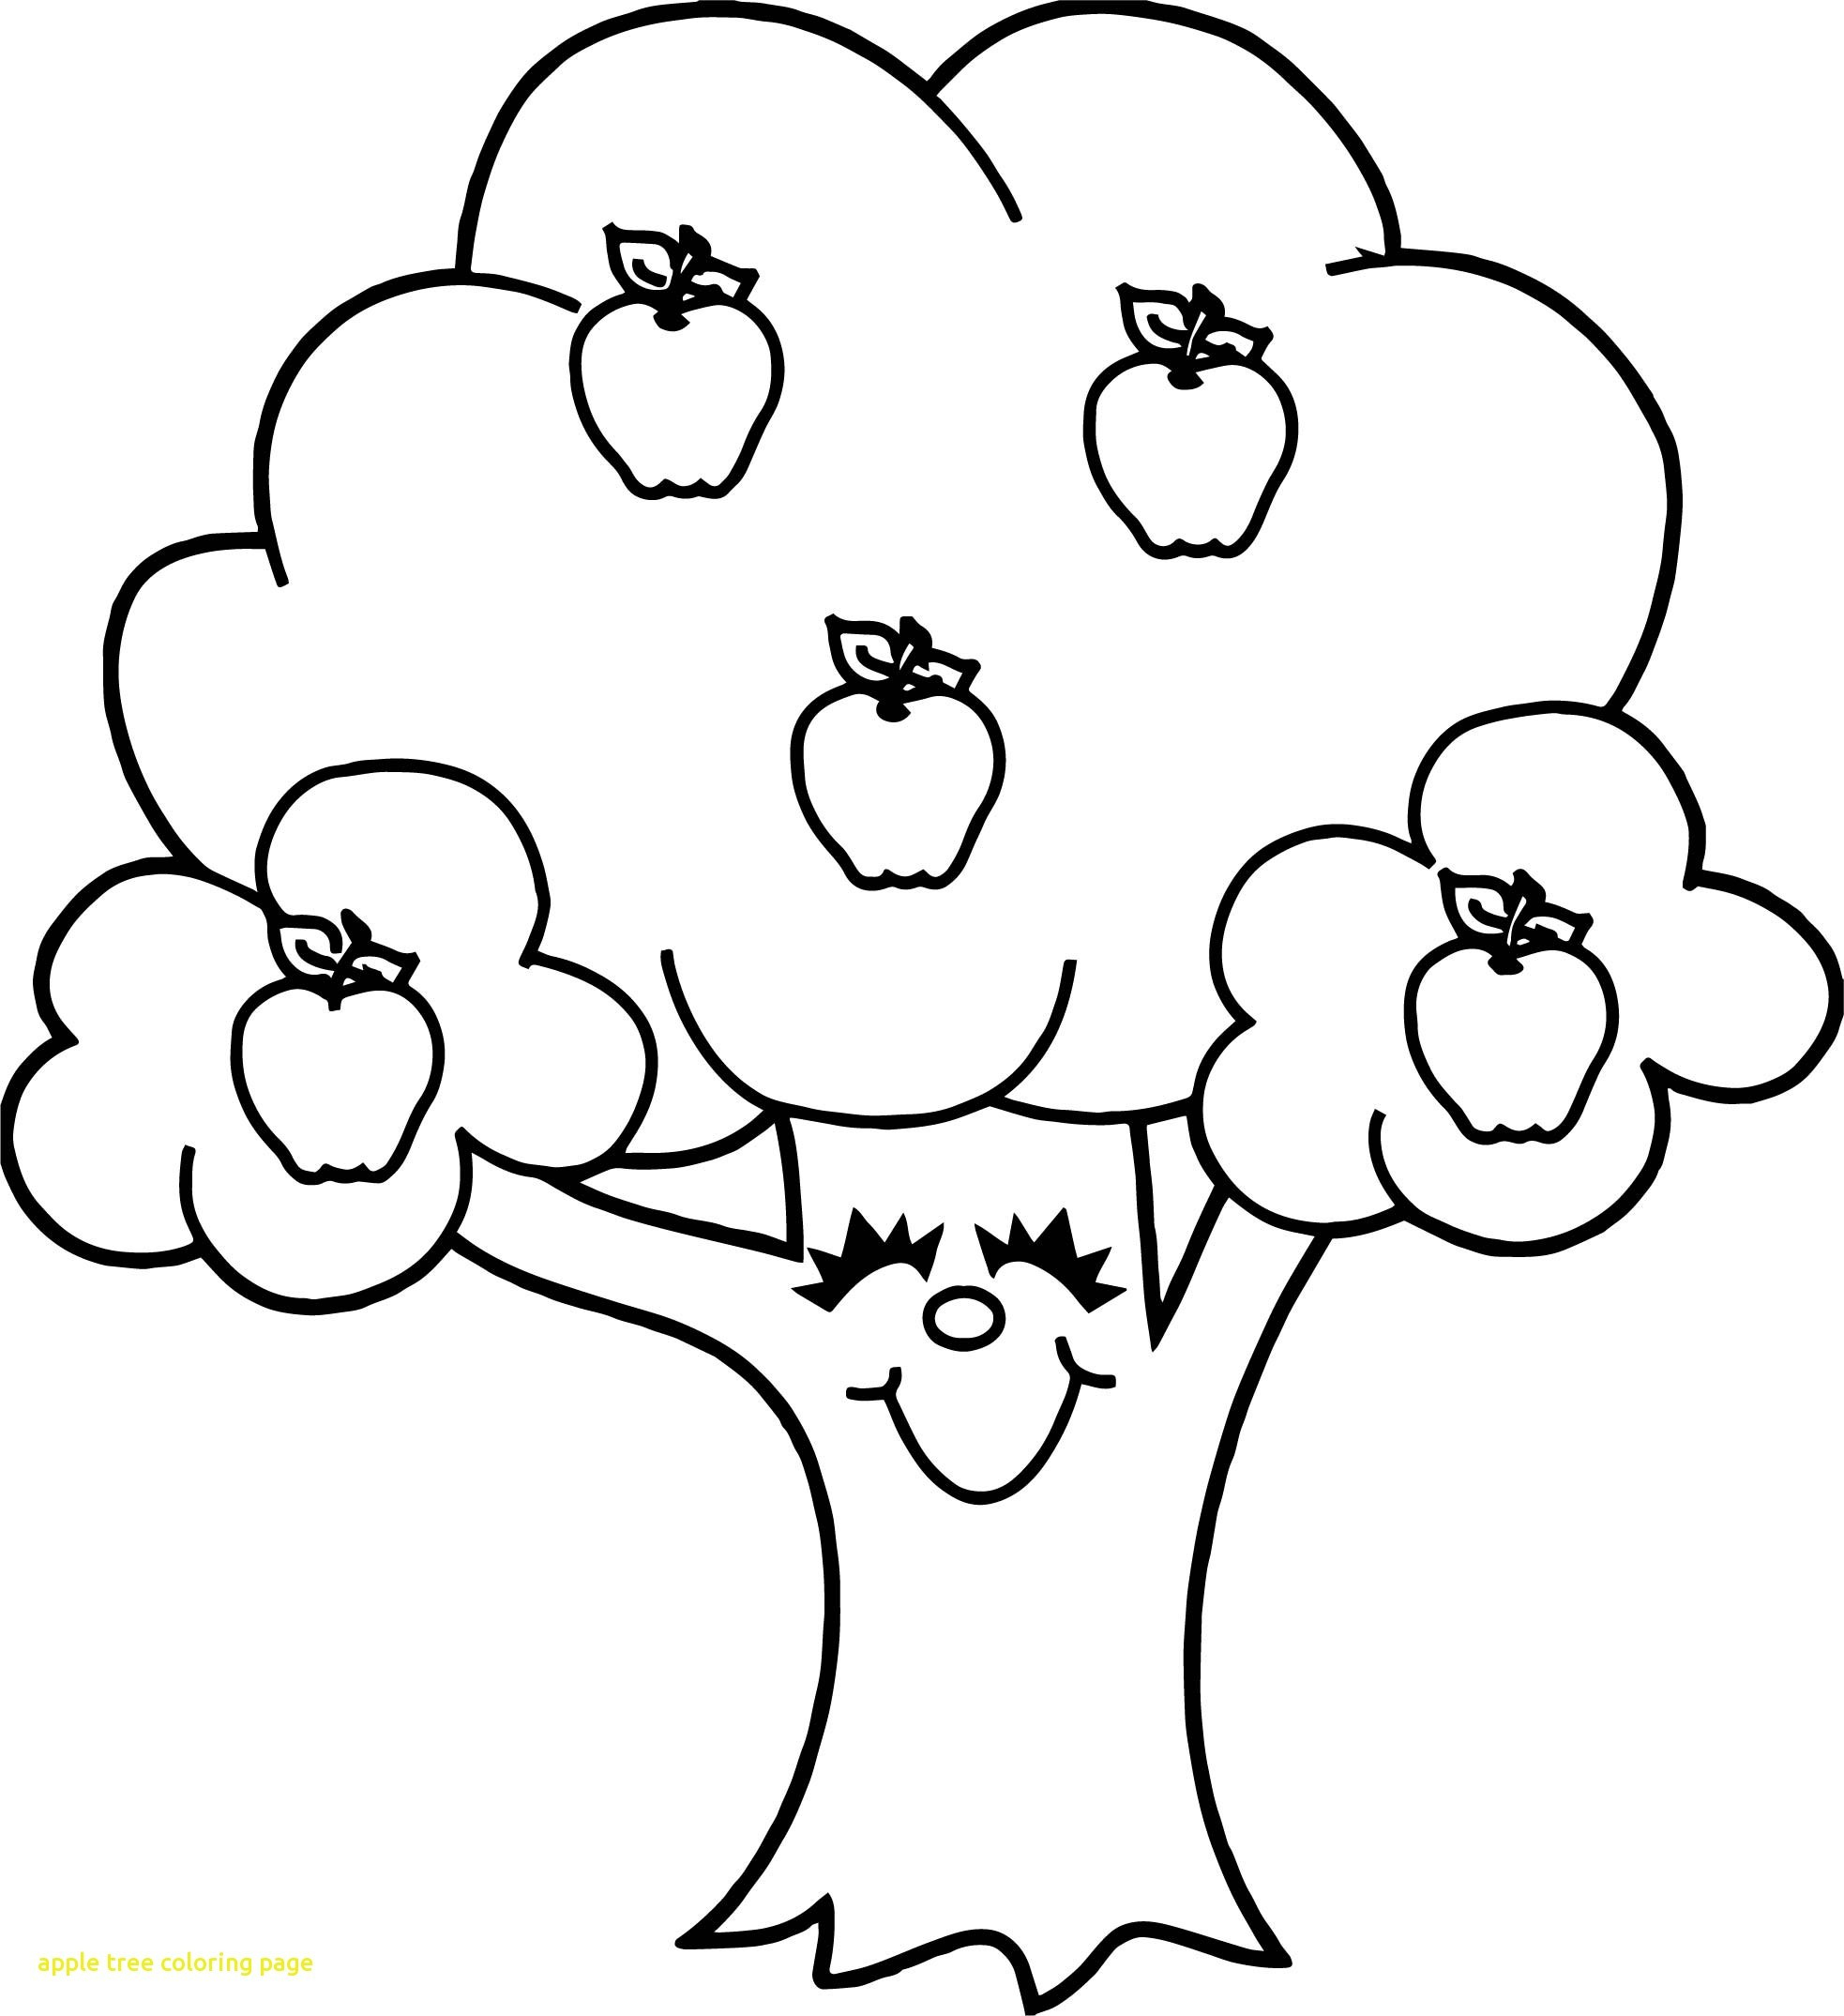 Coloring Pages Apple Tree Best Apple Tree Coloring Pages Free Gallery Of Apple Tree Coloring Page with Coloring Pages Apple orchard Download Download